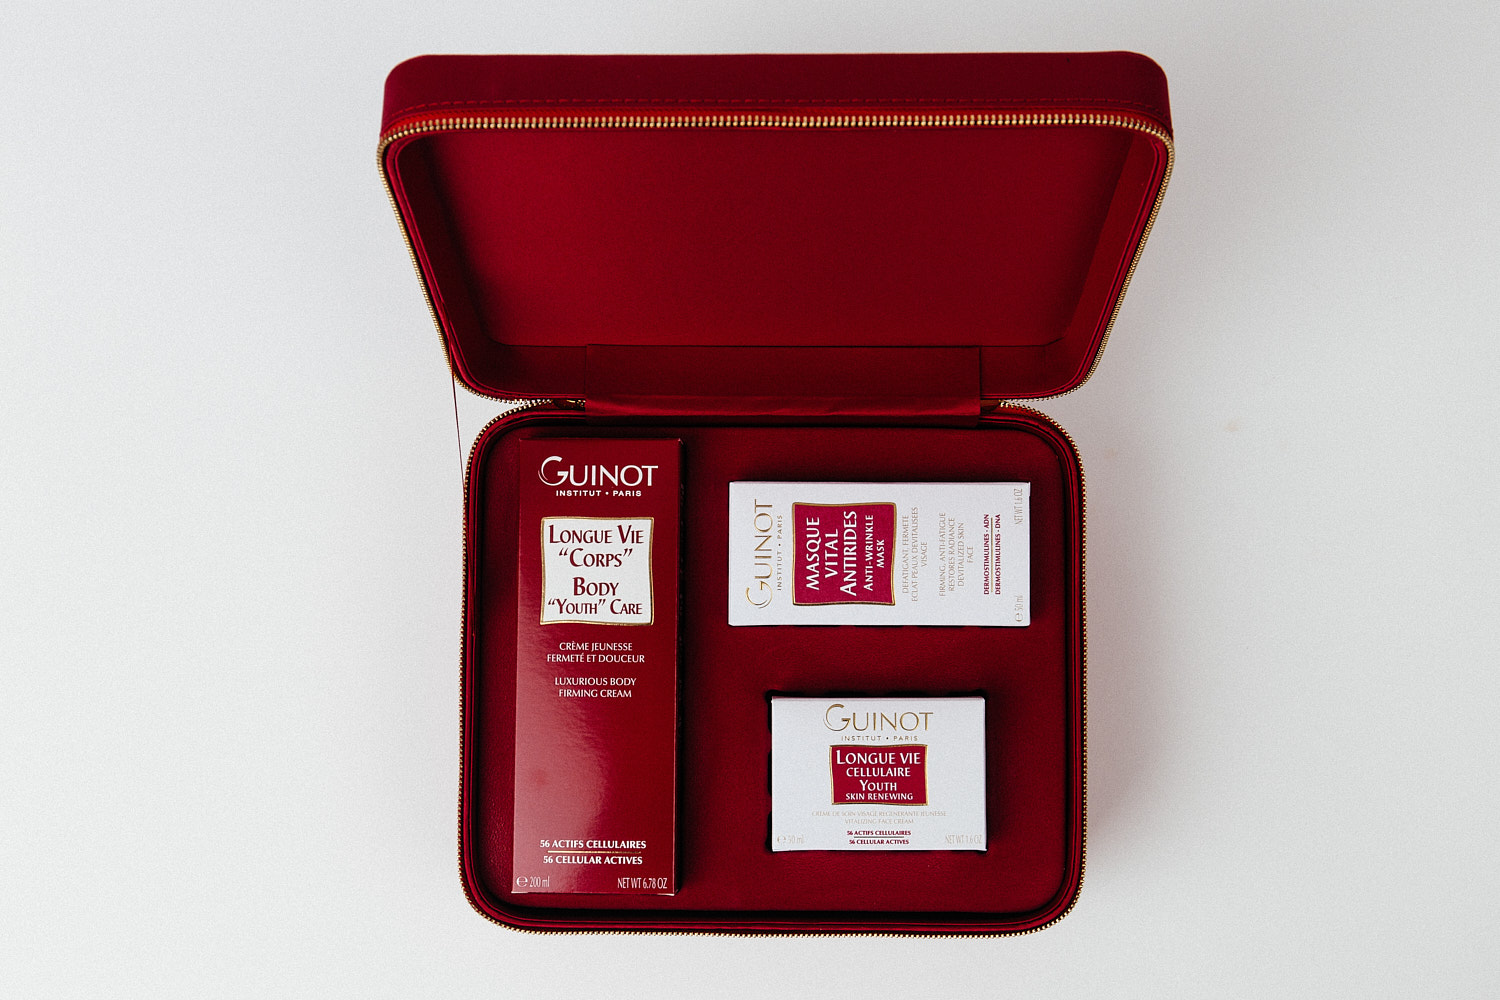 Packshot of beauty products in red leather box